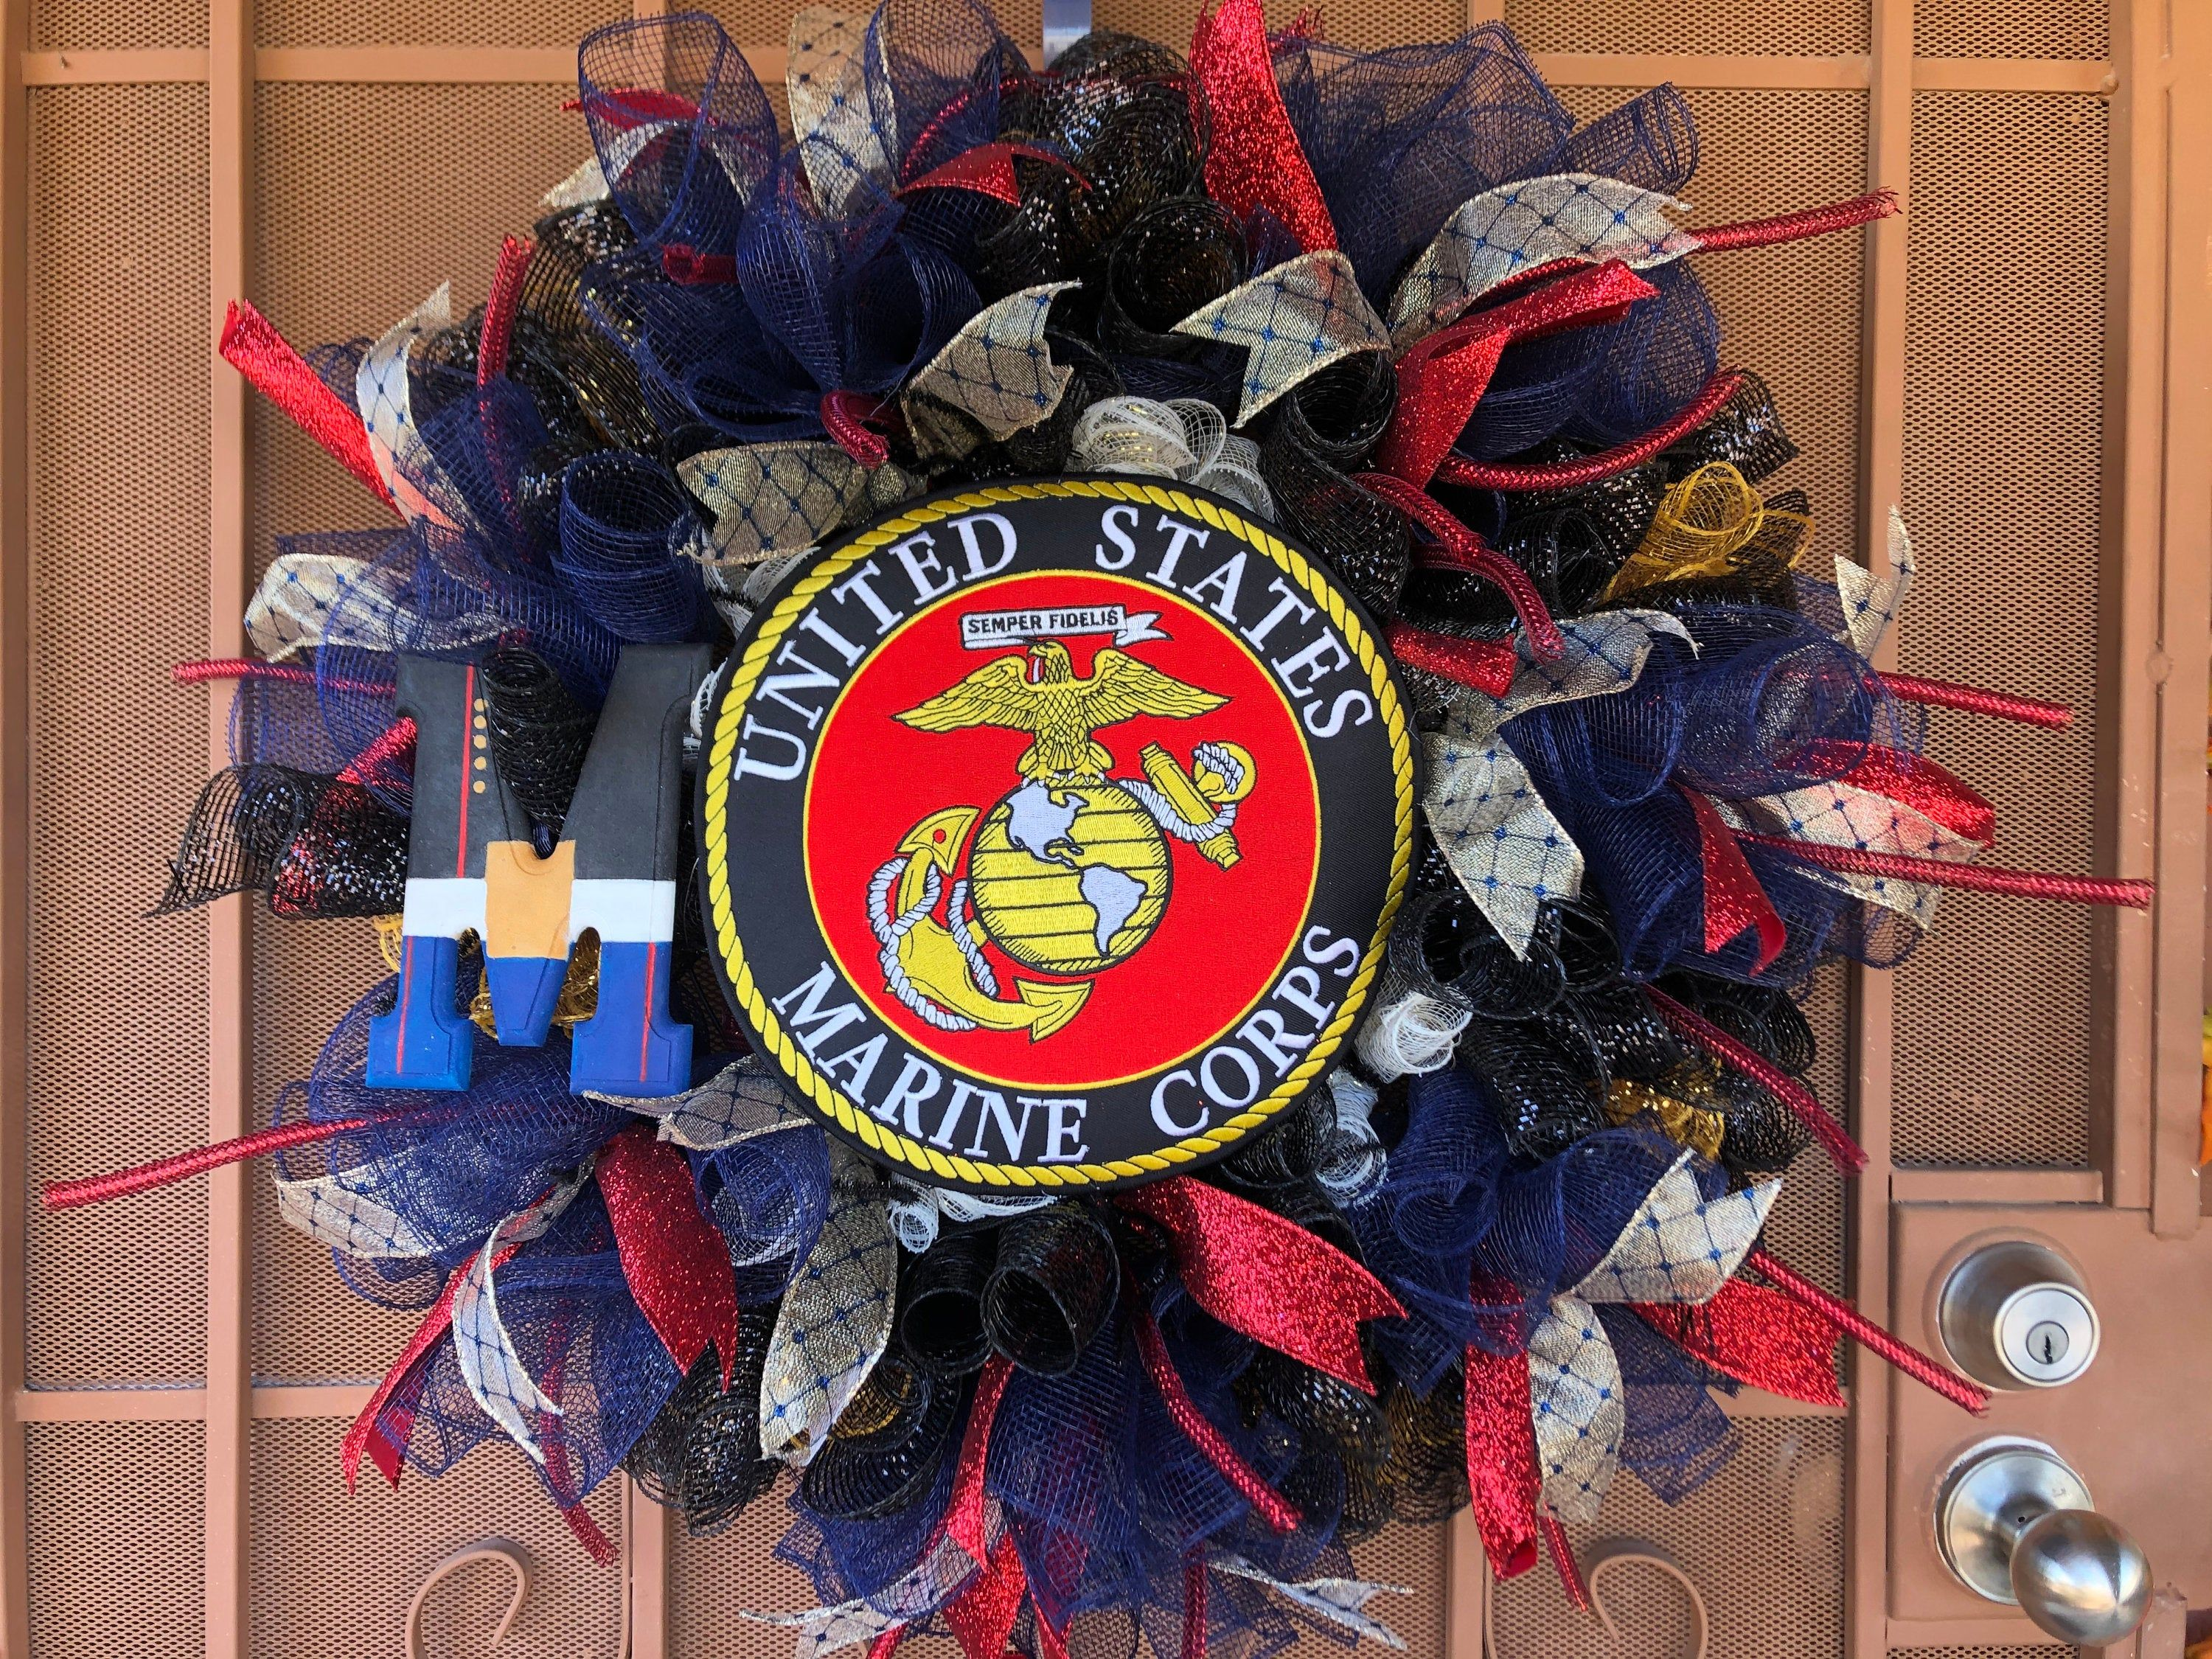 USMC Dress Blues Inspired Wreath with Hand Painted